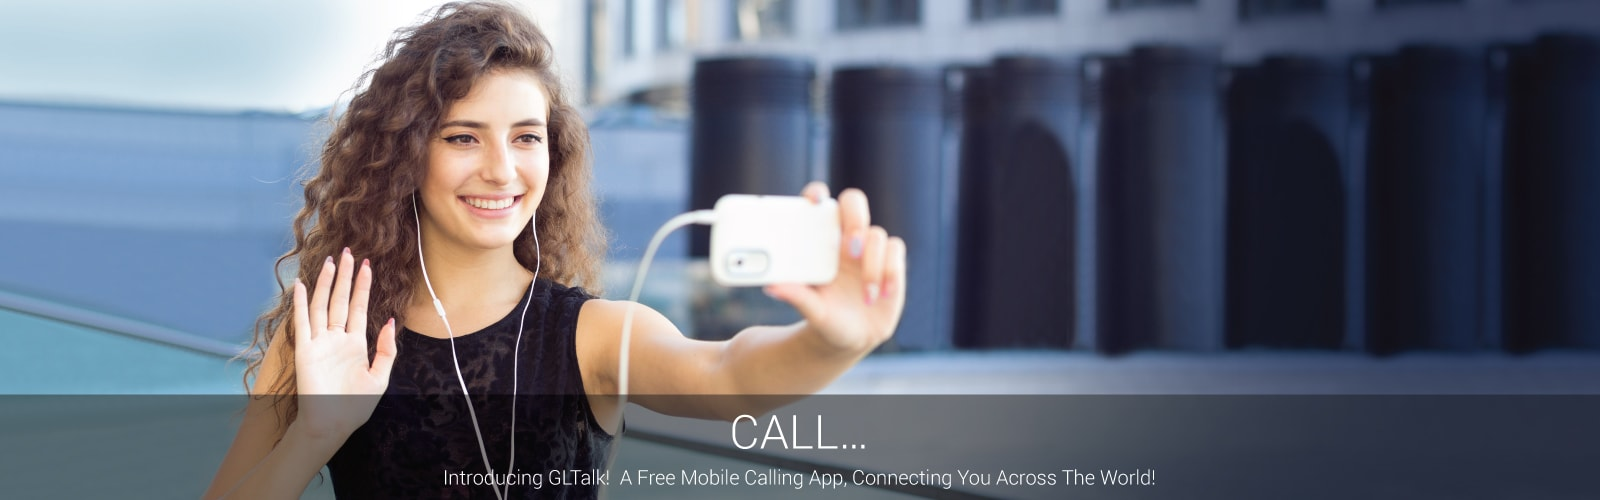 Introducing GLTalk! A Free Mobile Calling App, Connecting You Across The World!